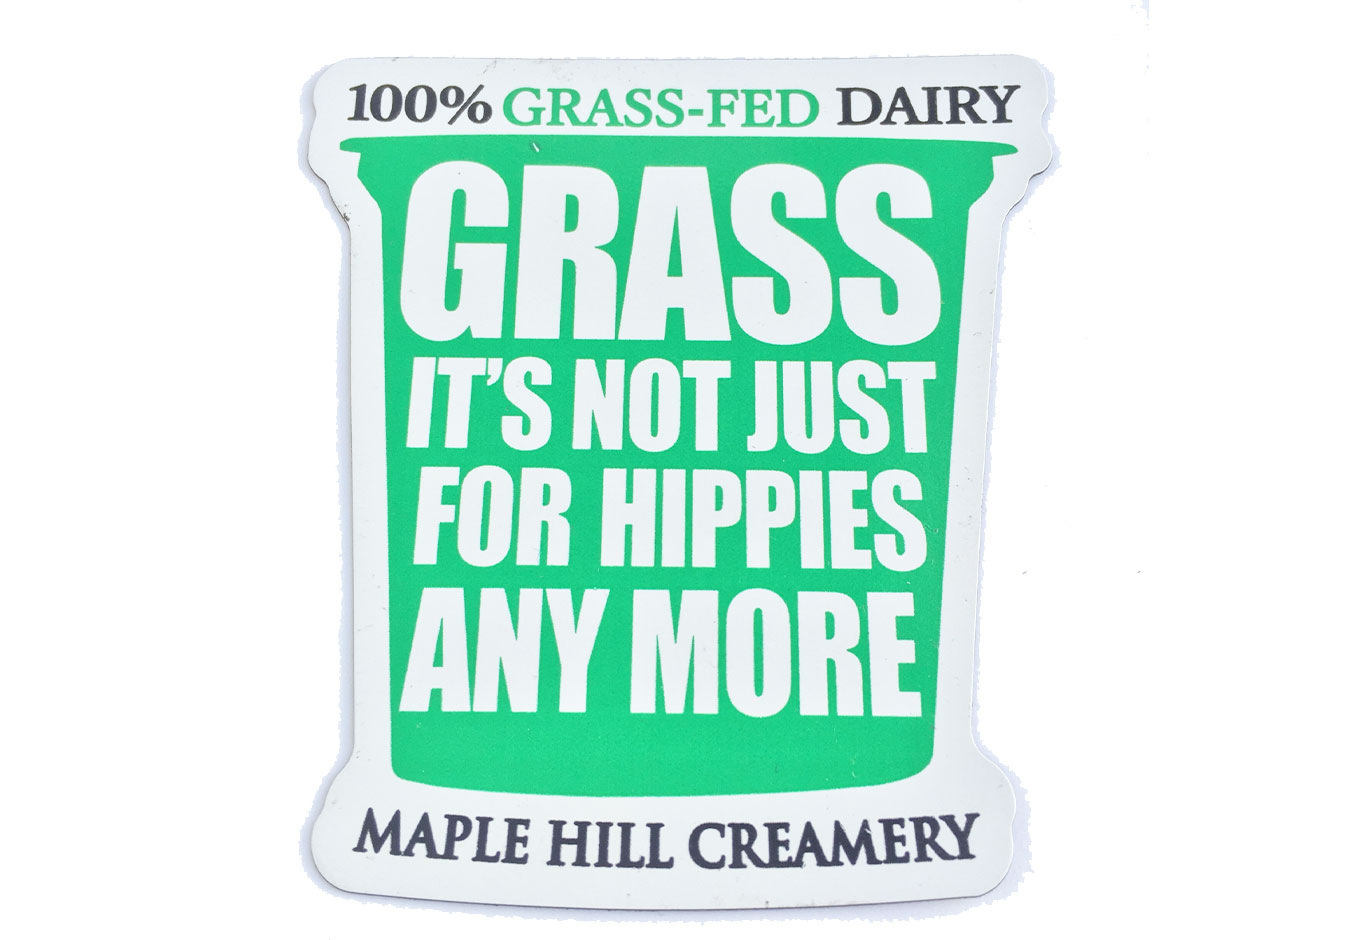 Maple Hill Creamery Die-Cut Magnet